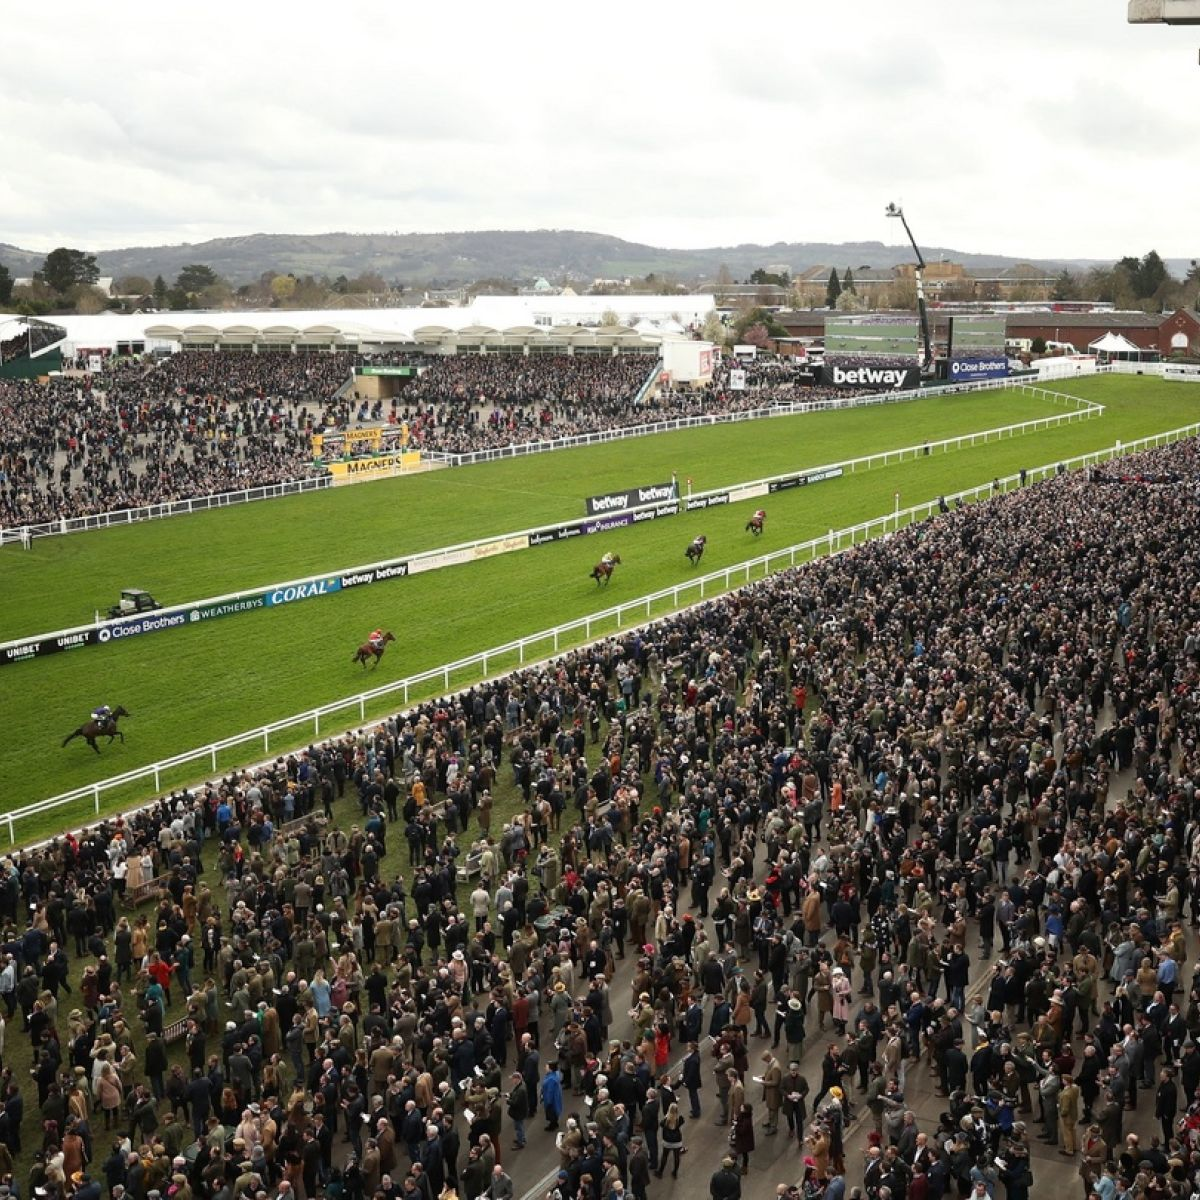 Irish Government's Mass Gathering Ban Puts Doubt On Racing Events